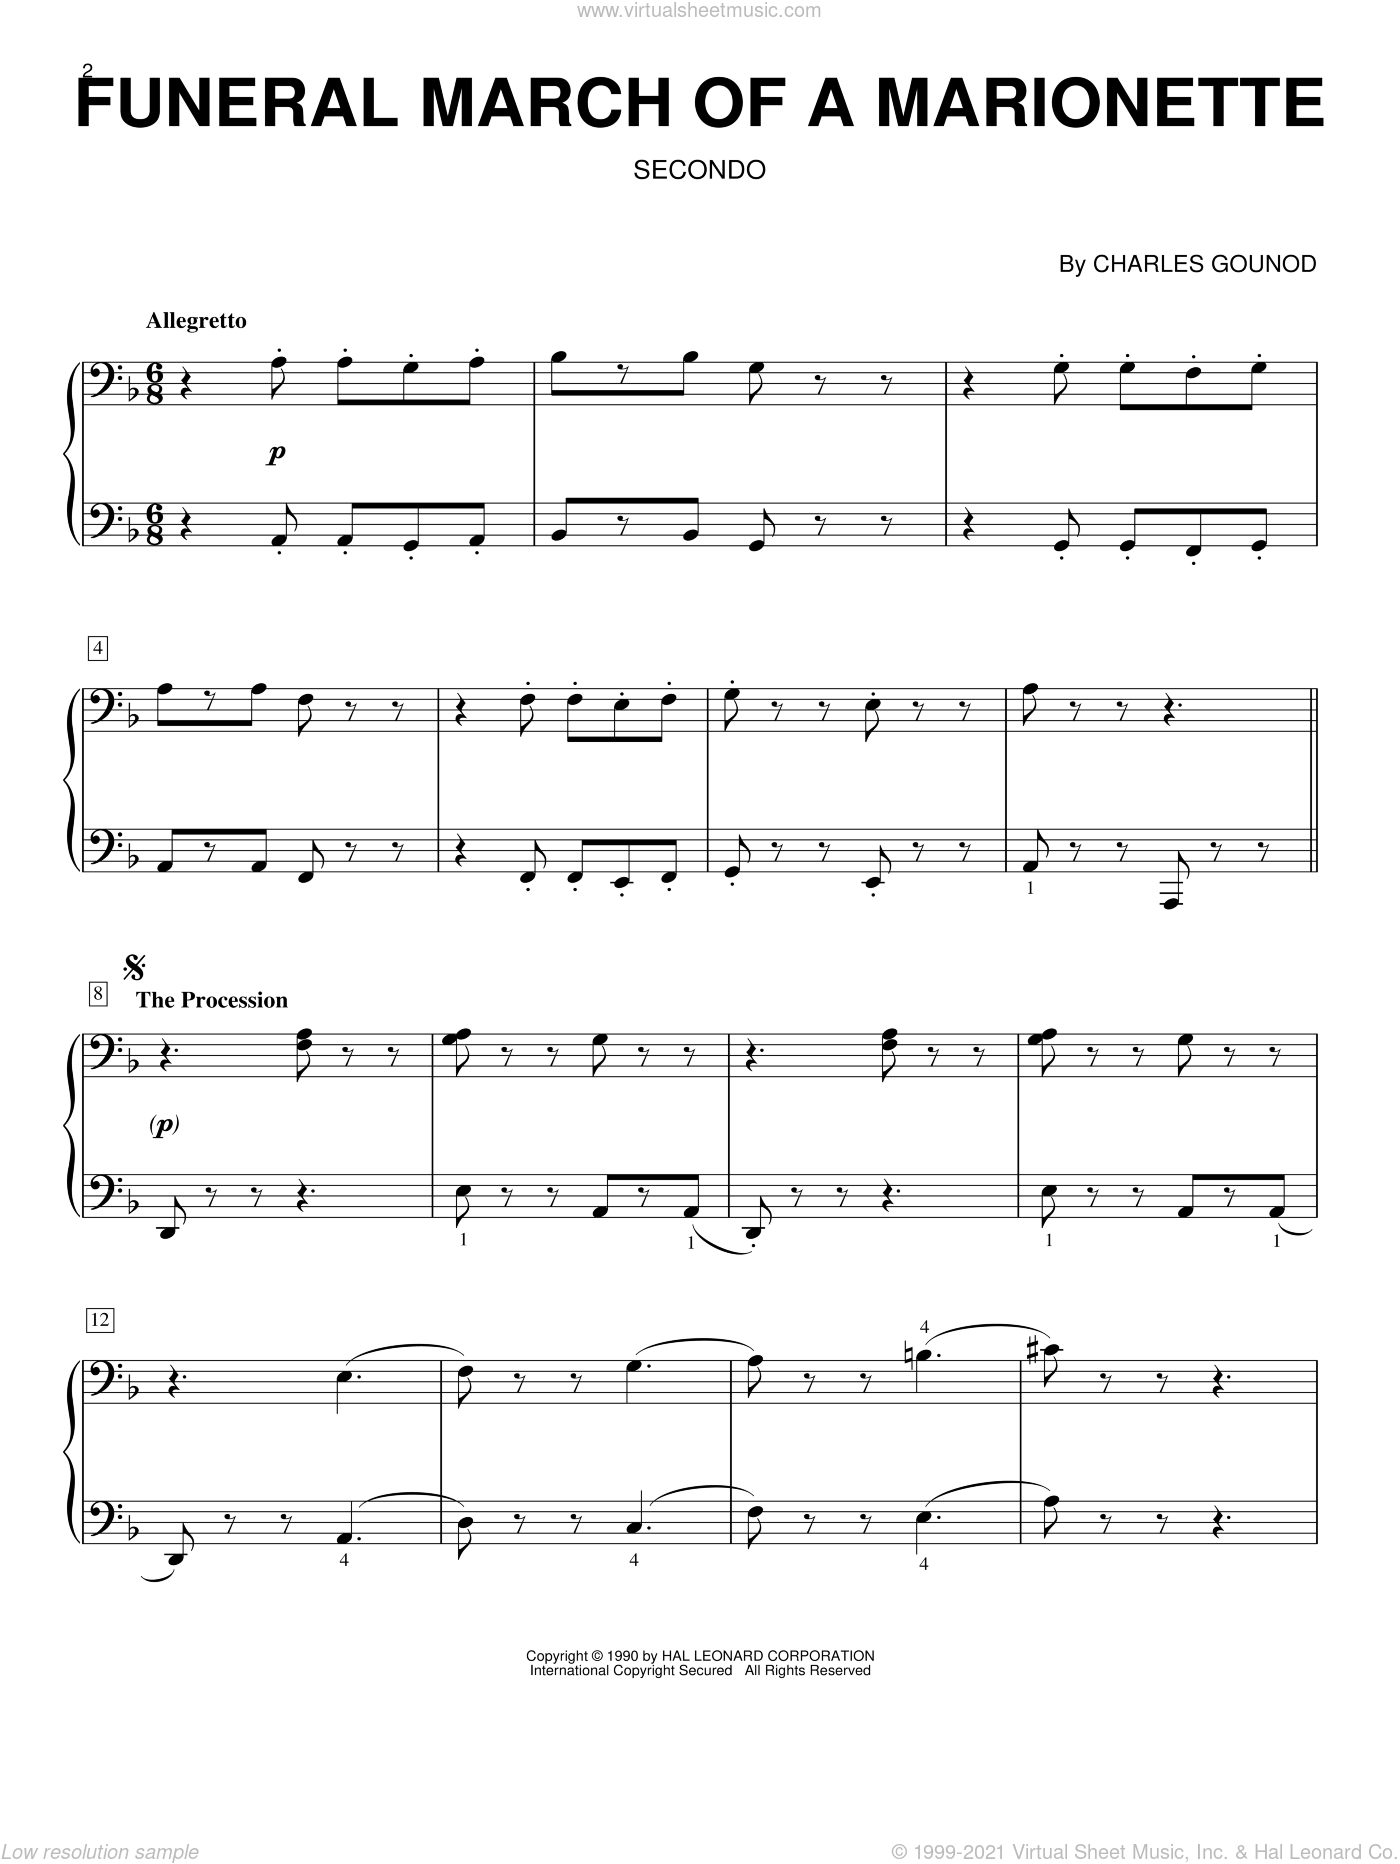 Funeral March Of A Marionette sheet music for piano four hands (duets) by Charles Gounod